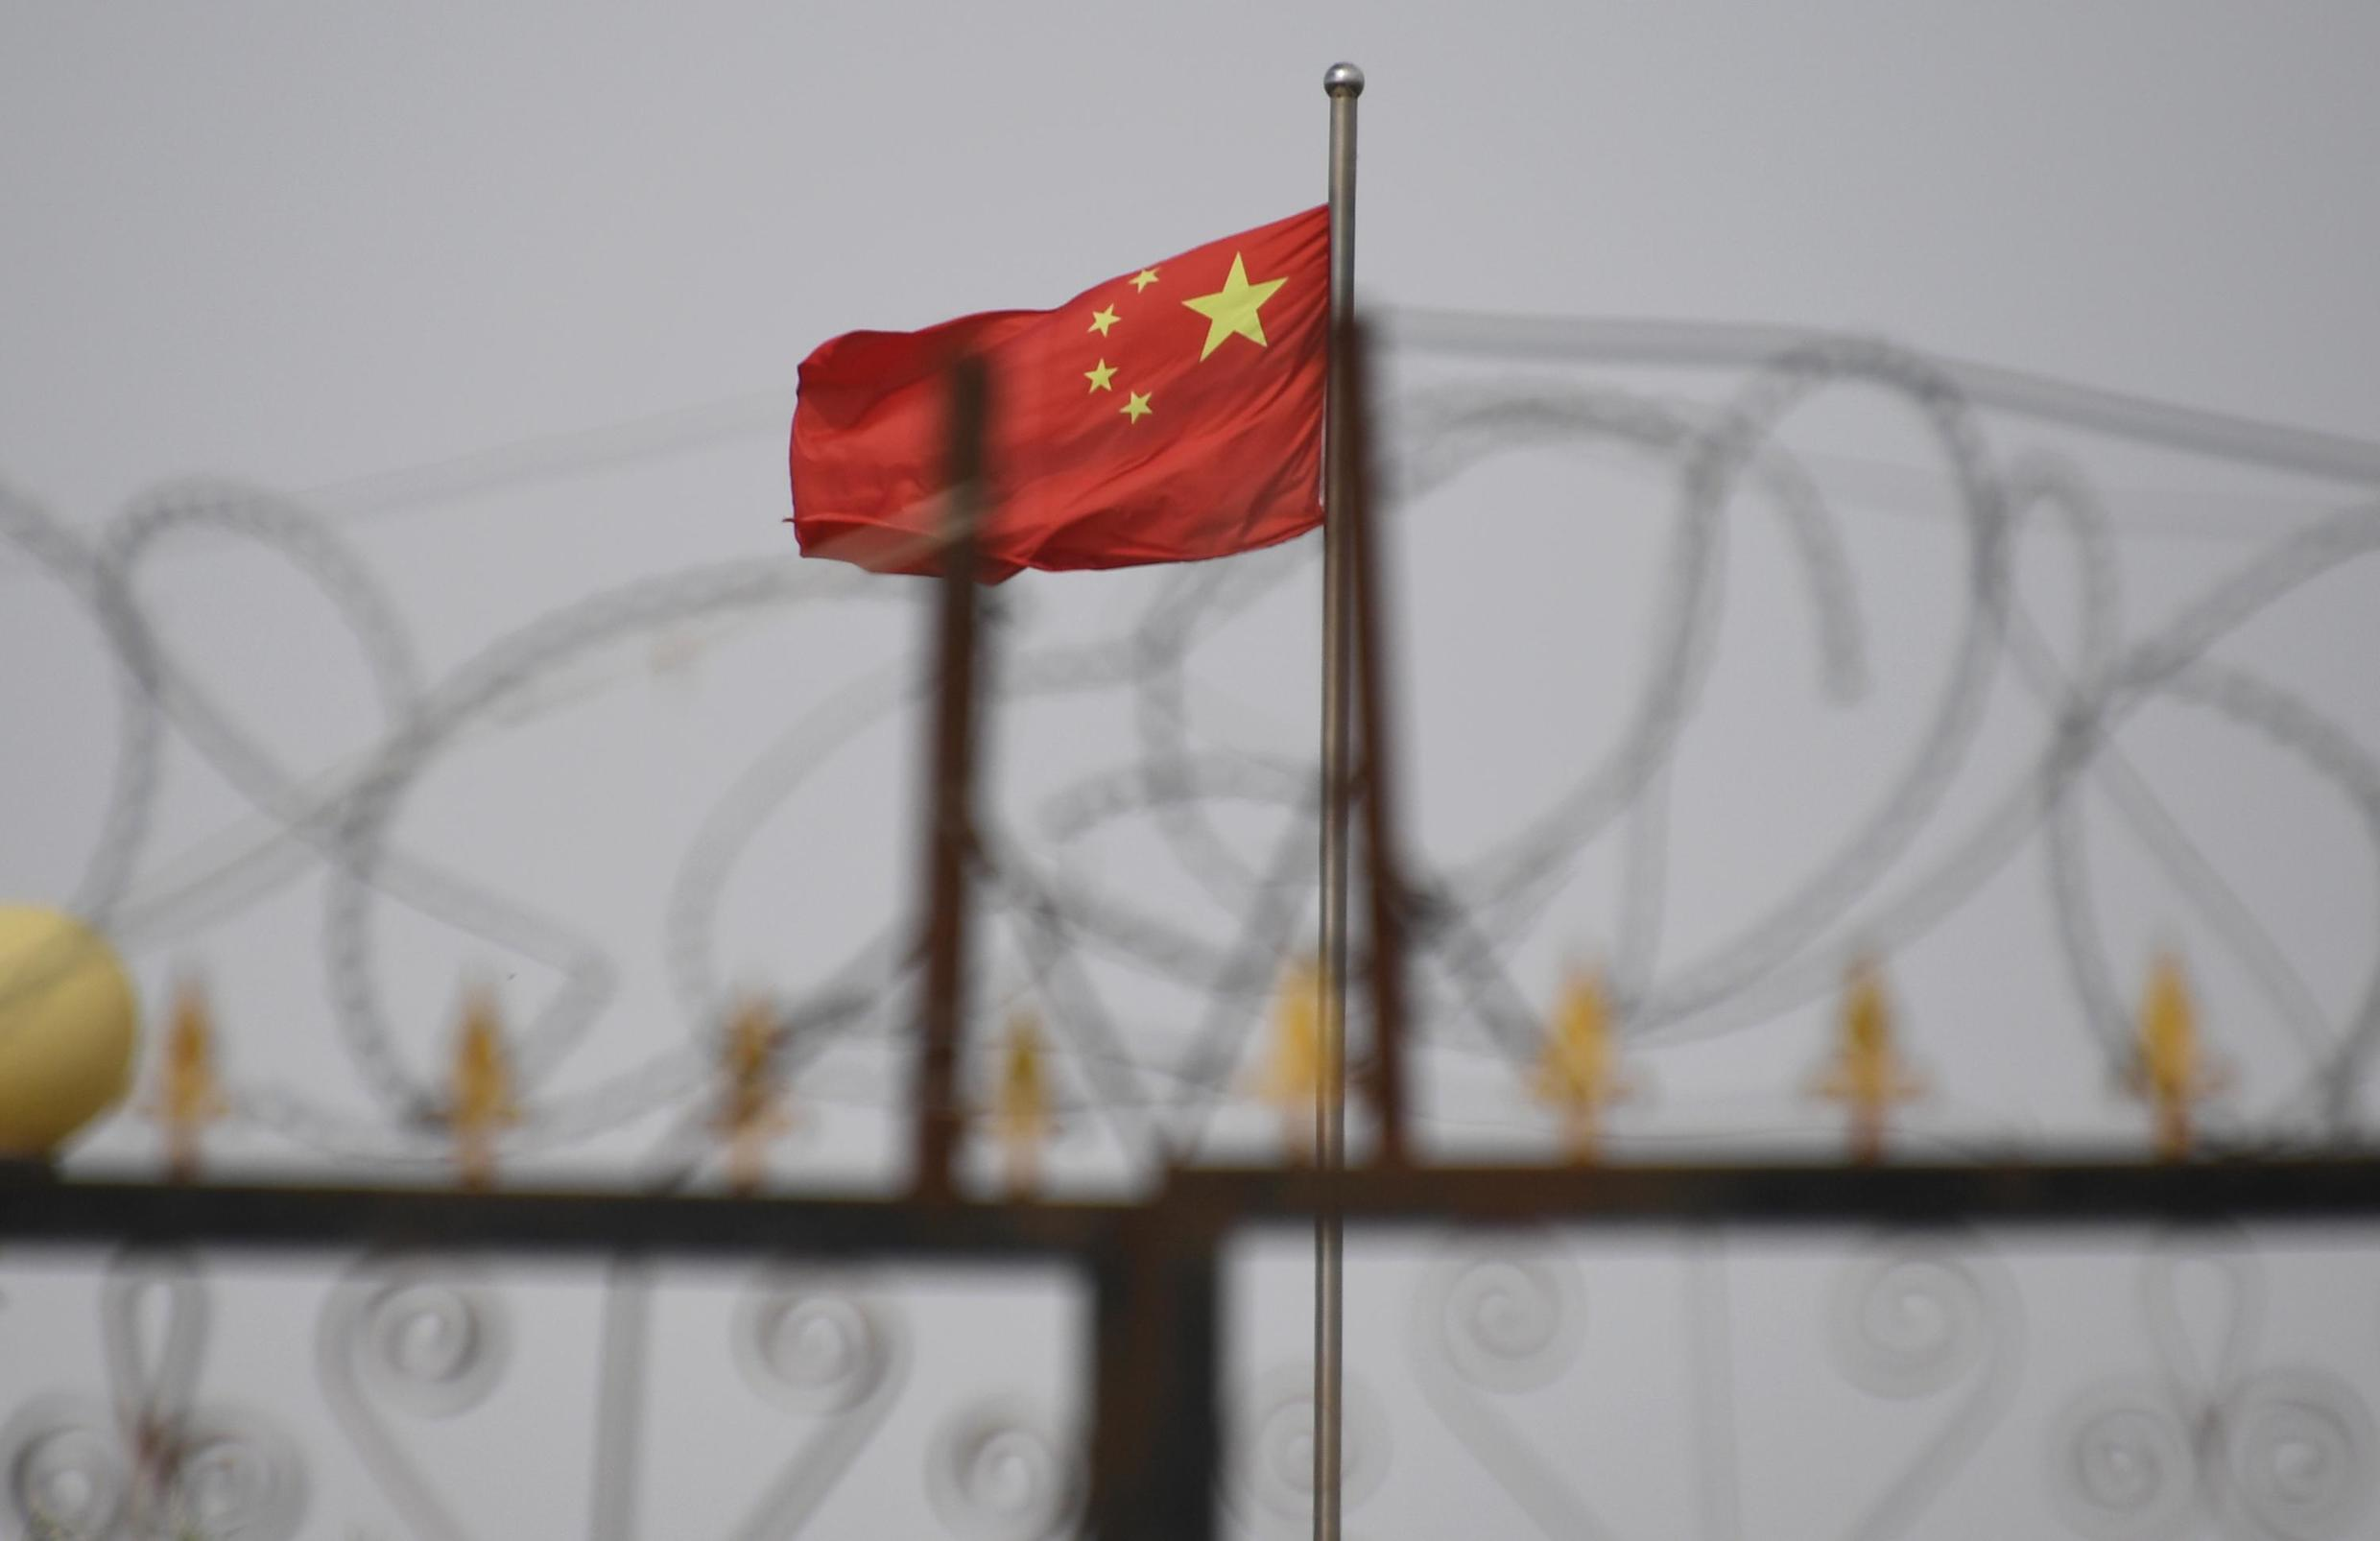 This photo taken on June 4, 2019 shows the Chinese flag behind razor wire at a housing compound in Yangisar, south of Kashgar, in China's western Xinjiang region.